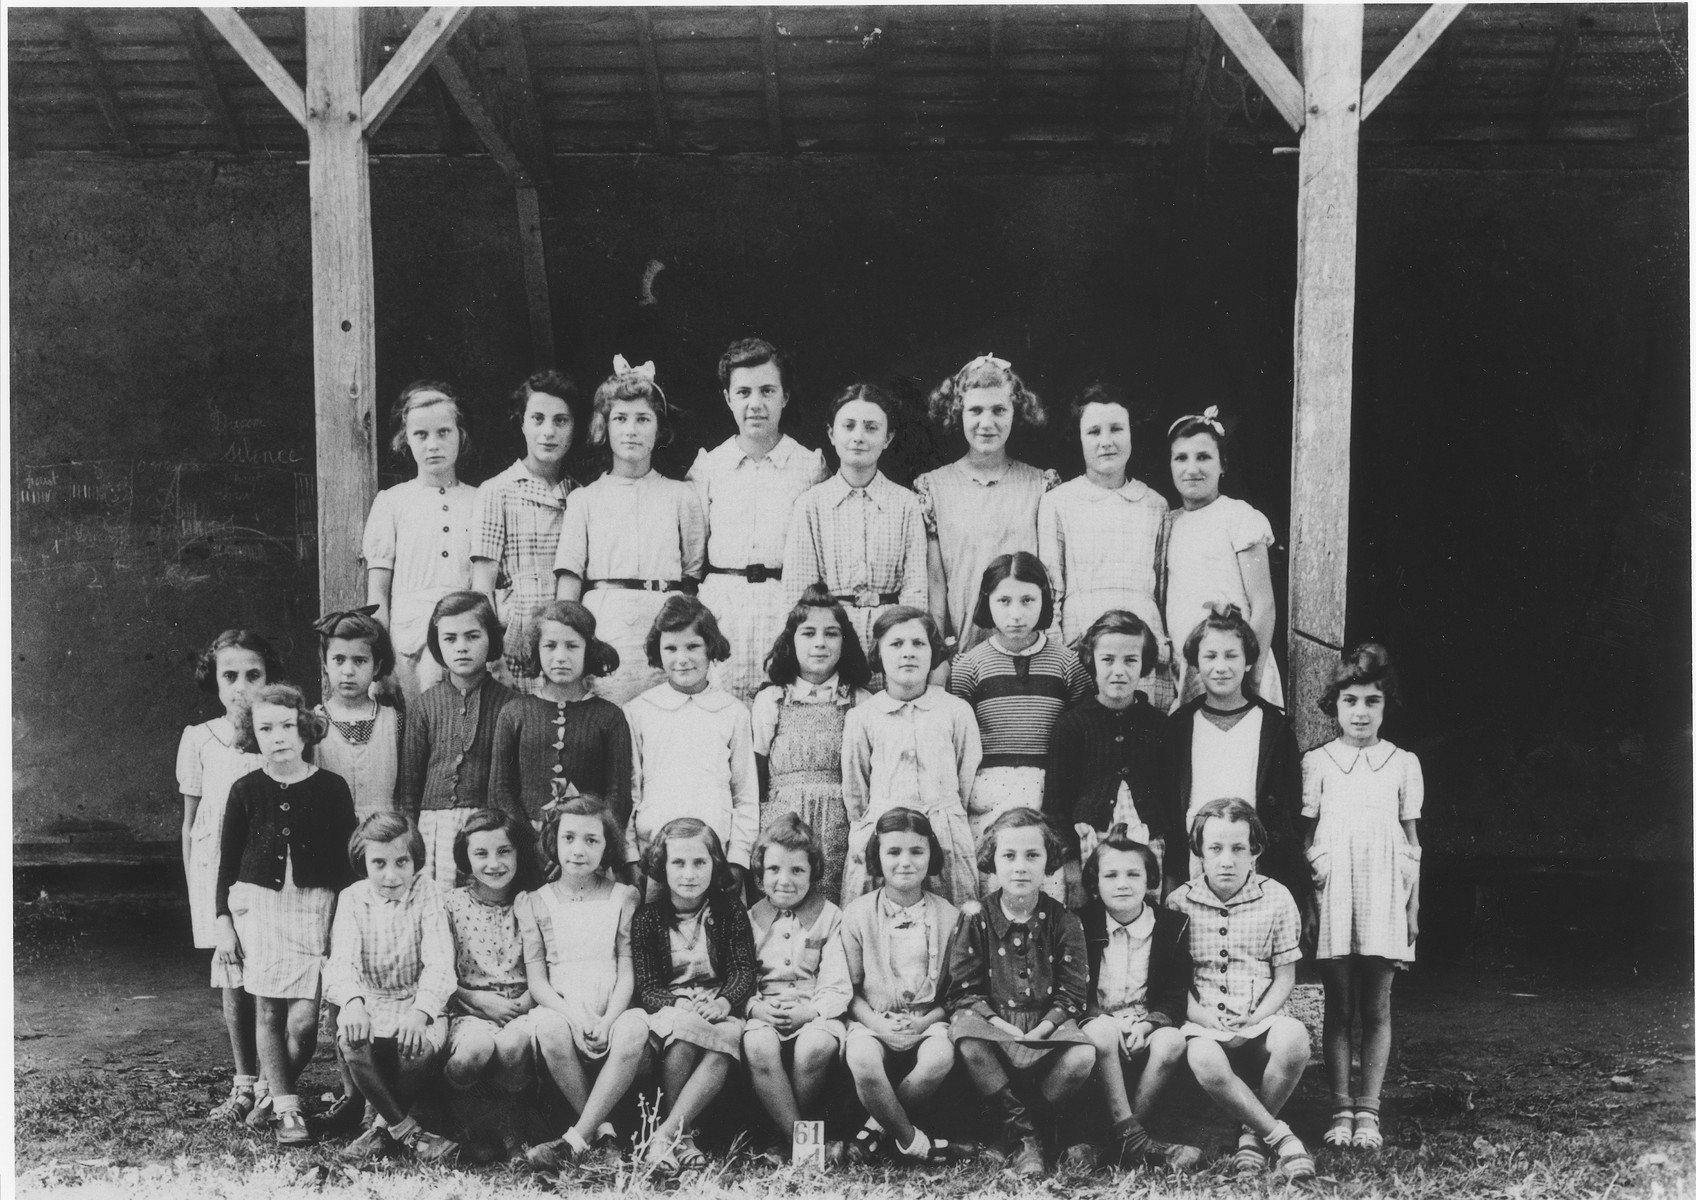 Jewish refugee children pose with their French classmates at a village school in Eauze, France.  Among those pictured are Berthe Silber (second row, second from the left); and Edith Steinfeld (standing third from the right).  Edith was subsequently deported to Auschwitz on convoy #29 from Drancy.